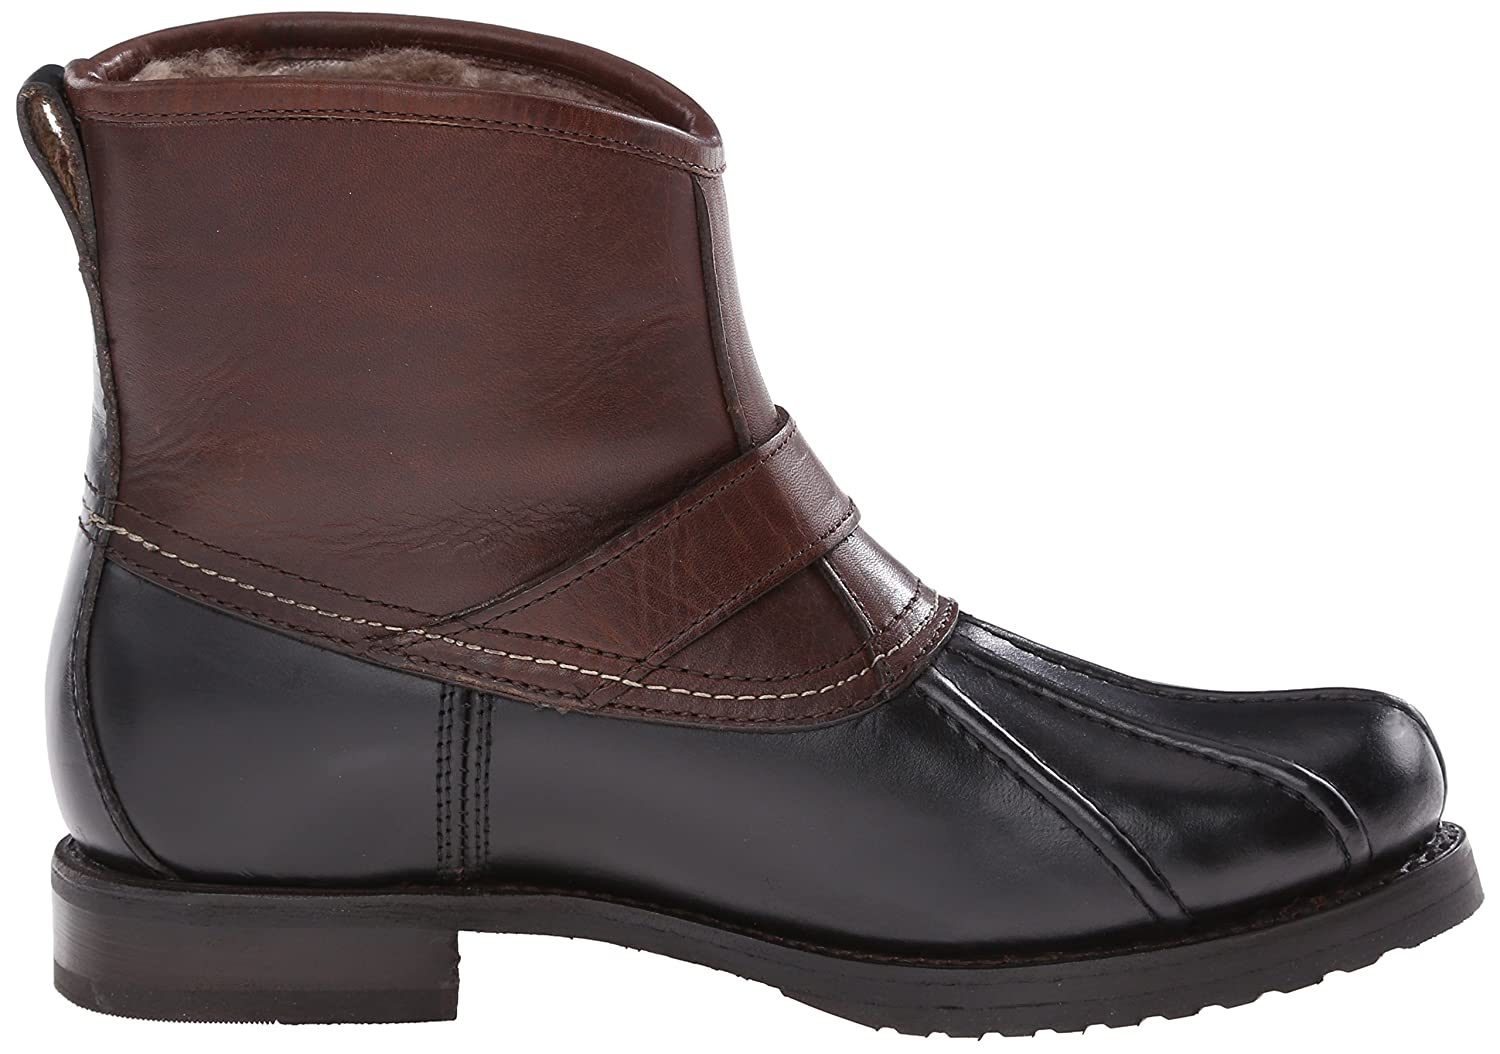 FRYE Women's Veronica Duck Engineer B(M) Winter Boot B00TQ7N3P2 6.5 B(M) Engineer US|Black/Multi 05887c